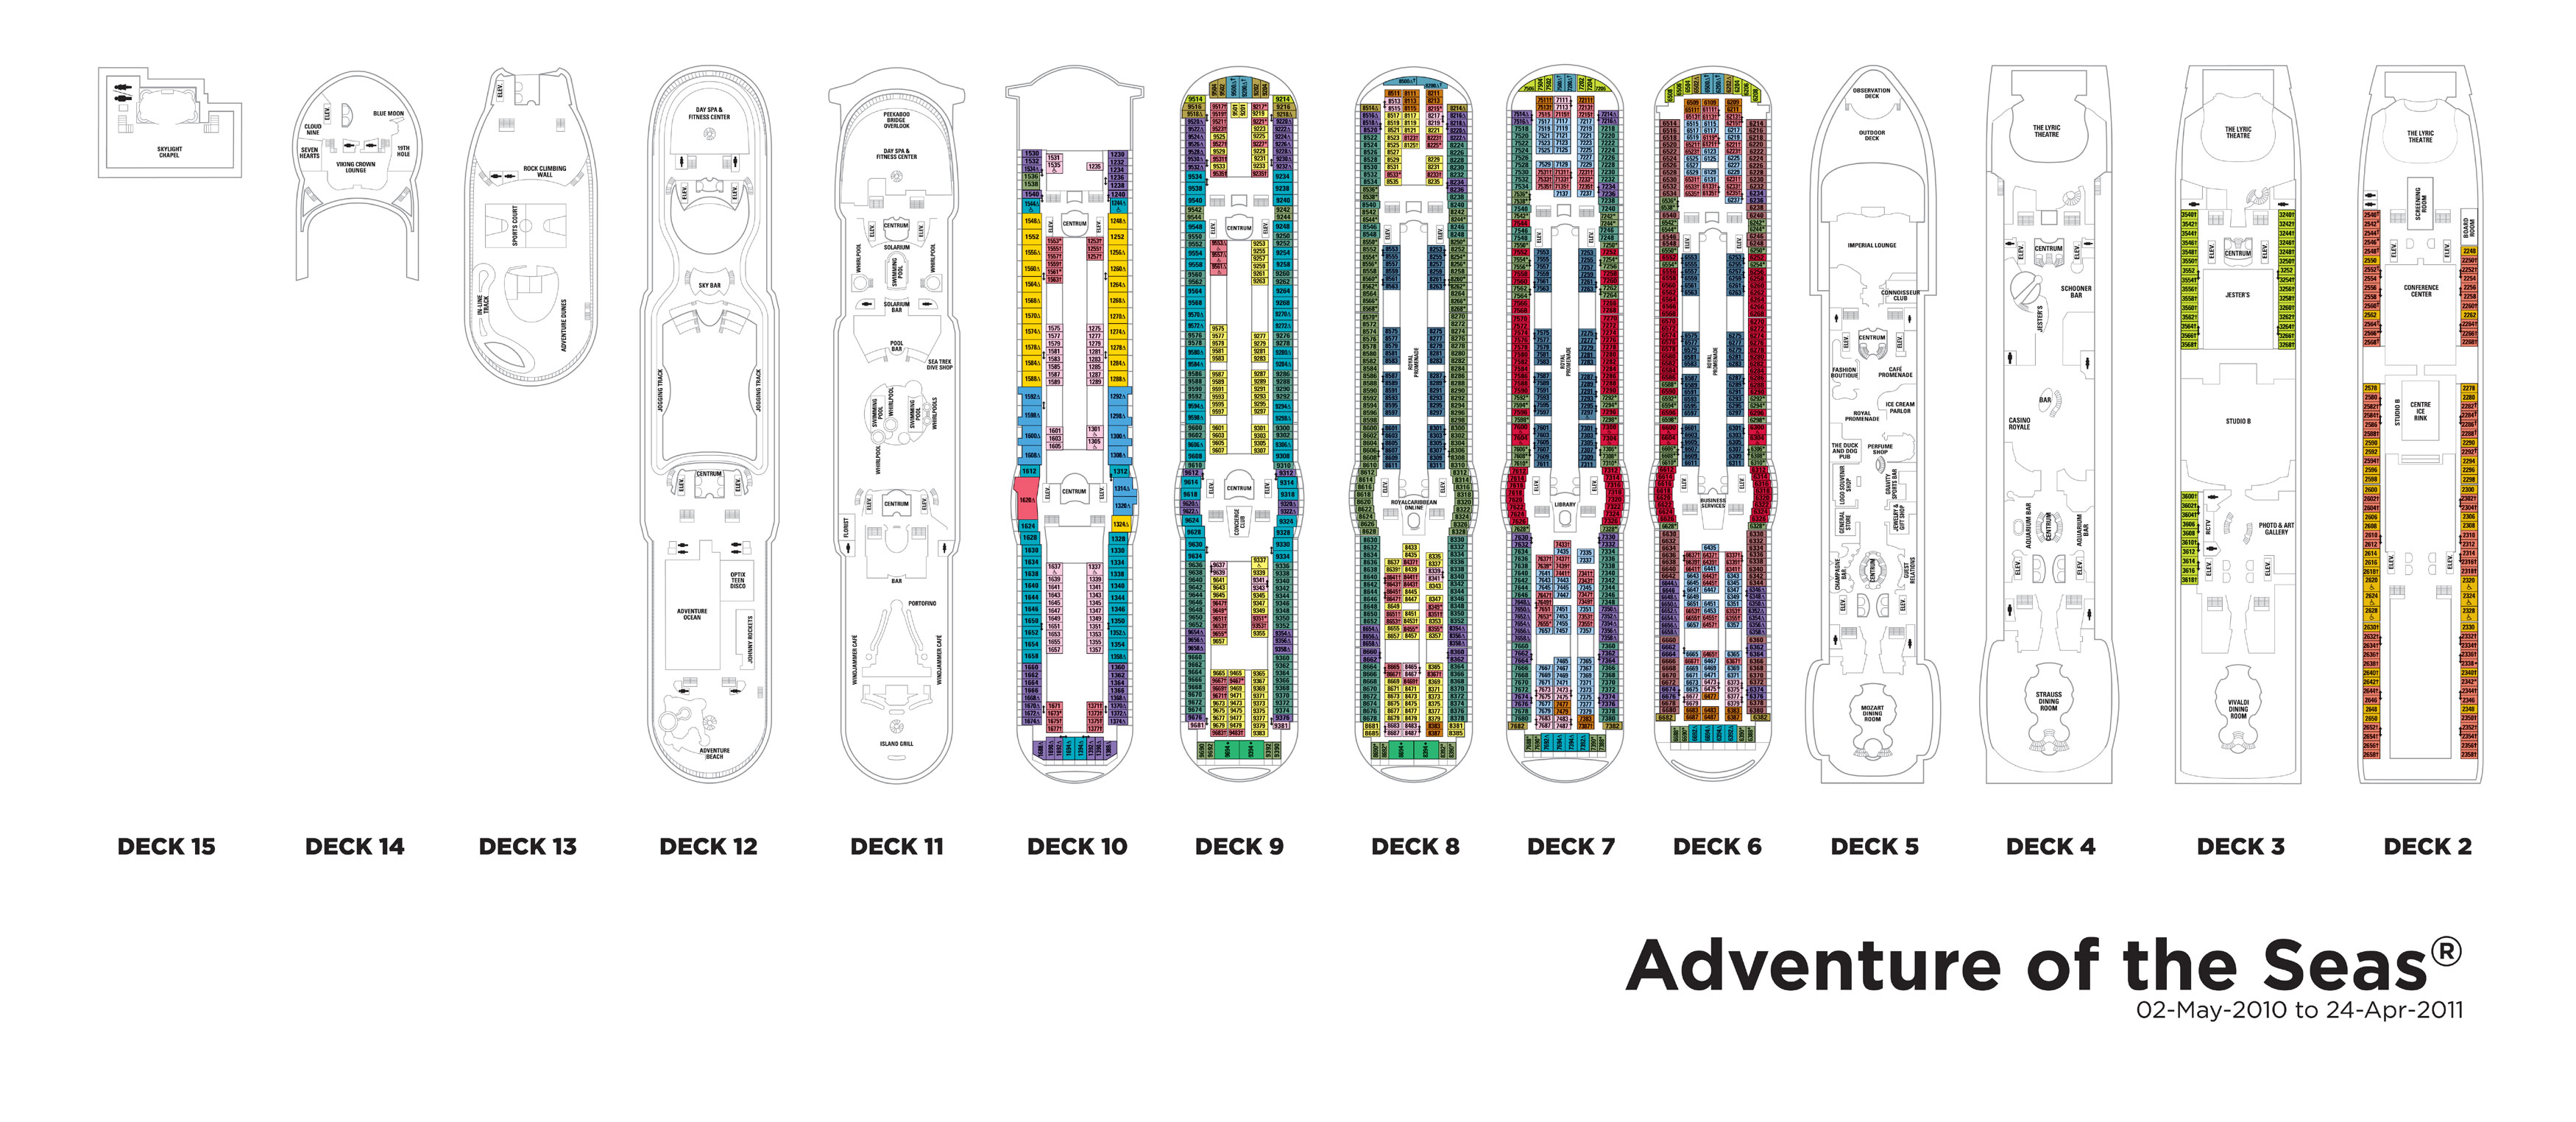 Royal caribbean cruise adventure of the seas deck plan great modest 21 royal caribbean cruise adventure of the seas deck plan new baanklon Gallery